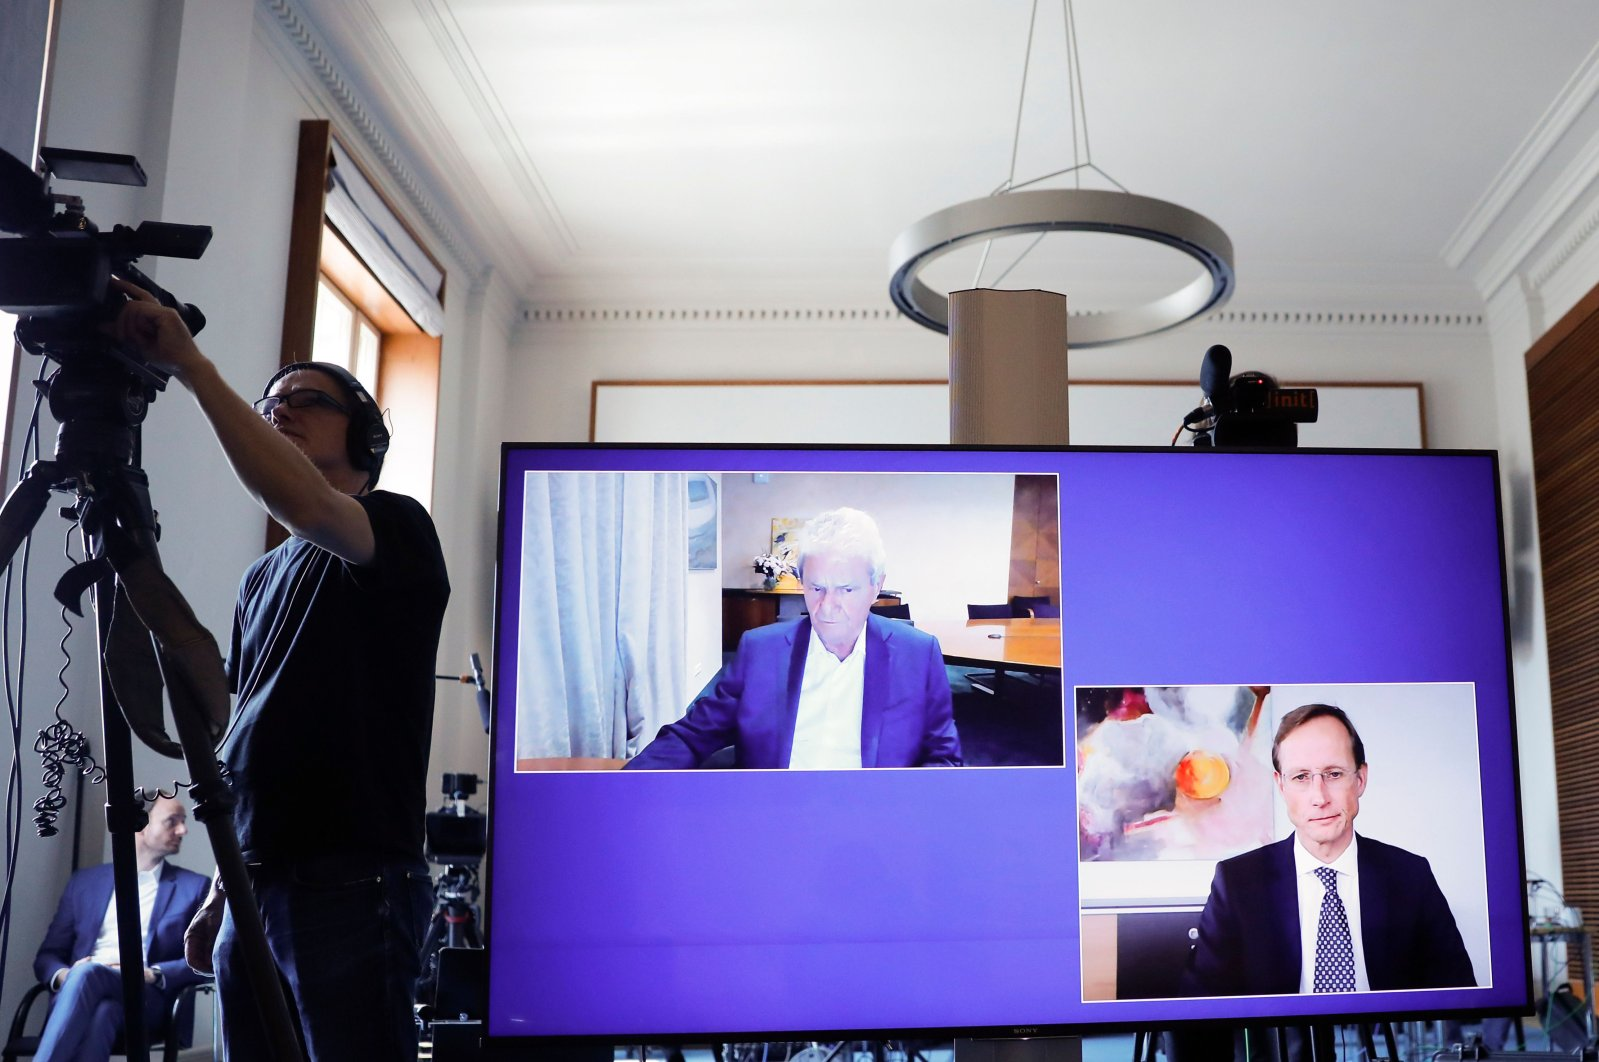 CureVac main shareholder Dietmar Hopp (L) and CureVac CEO Franz-Werner Haas are displayed on a screen during a news conference at the economy ministry in Berlin, Germany, June 15, 2020. (AFP Photo)